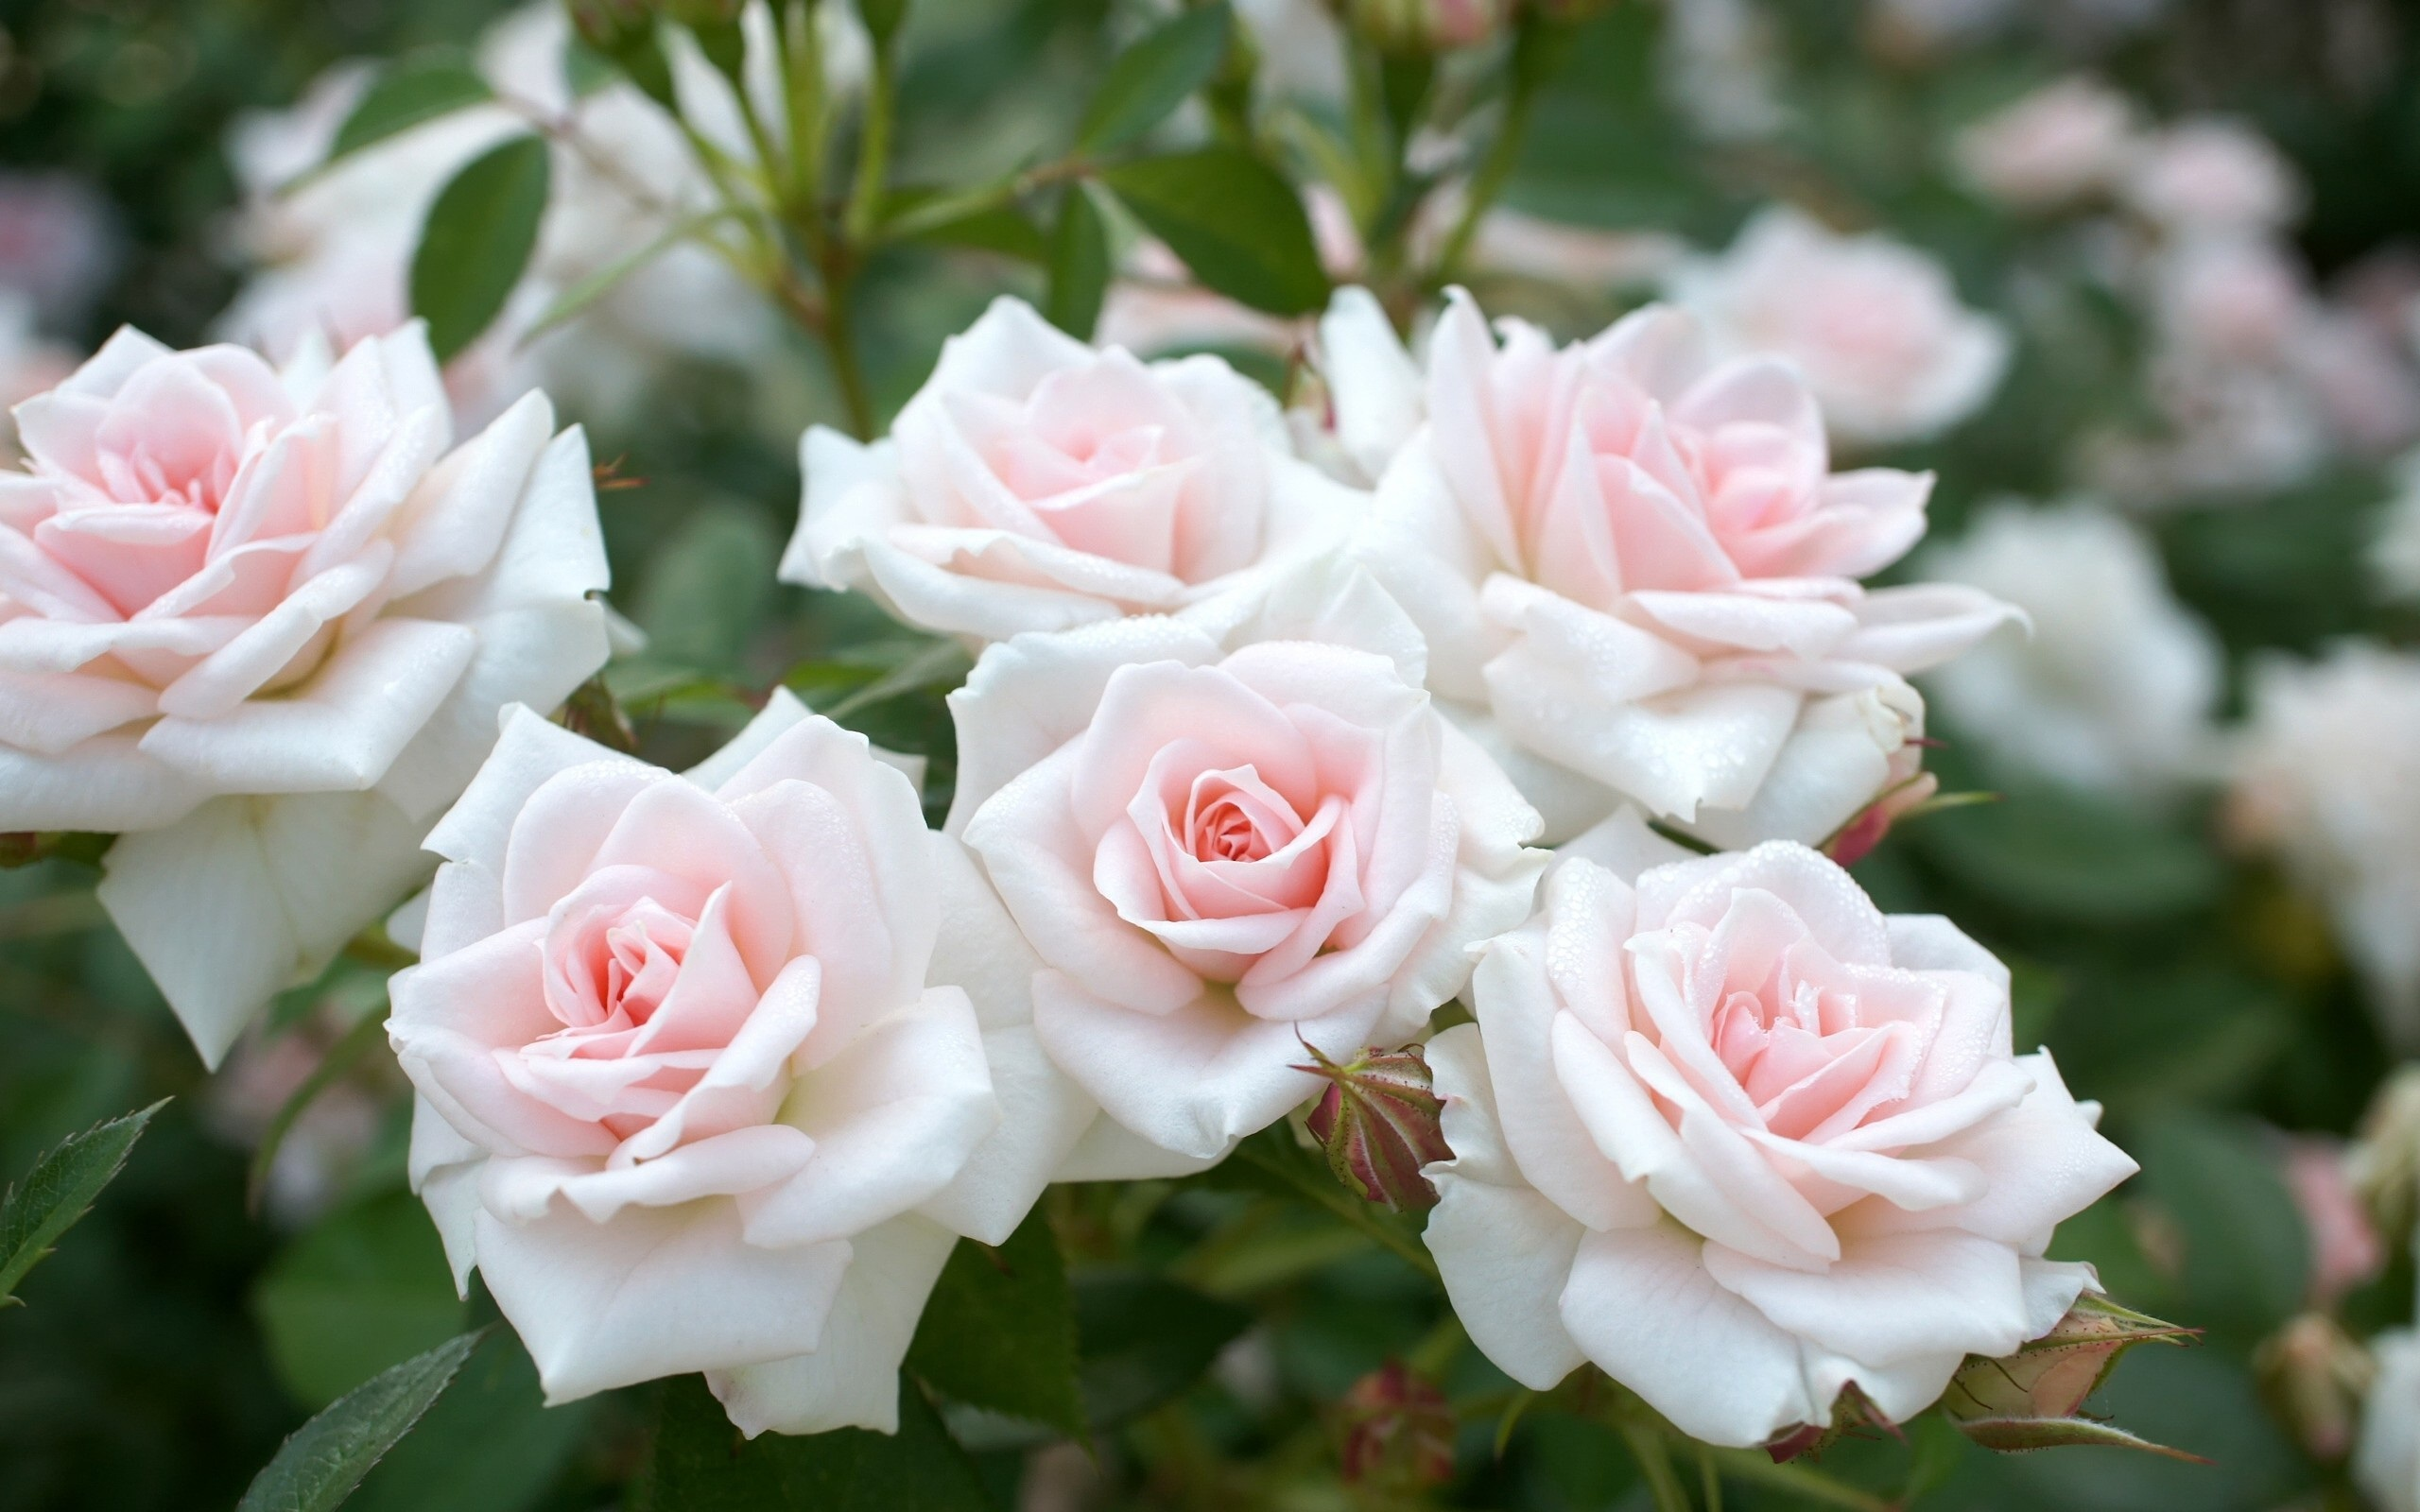 Wallpaper Light Pink Roses Garden Flowers 2560x1600 Hd Picture Image